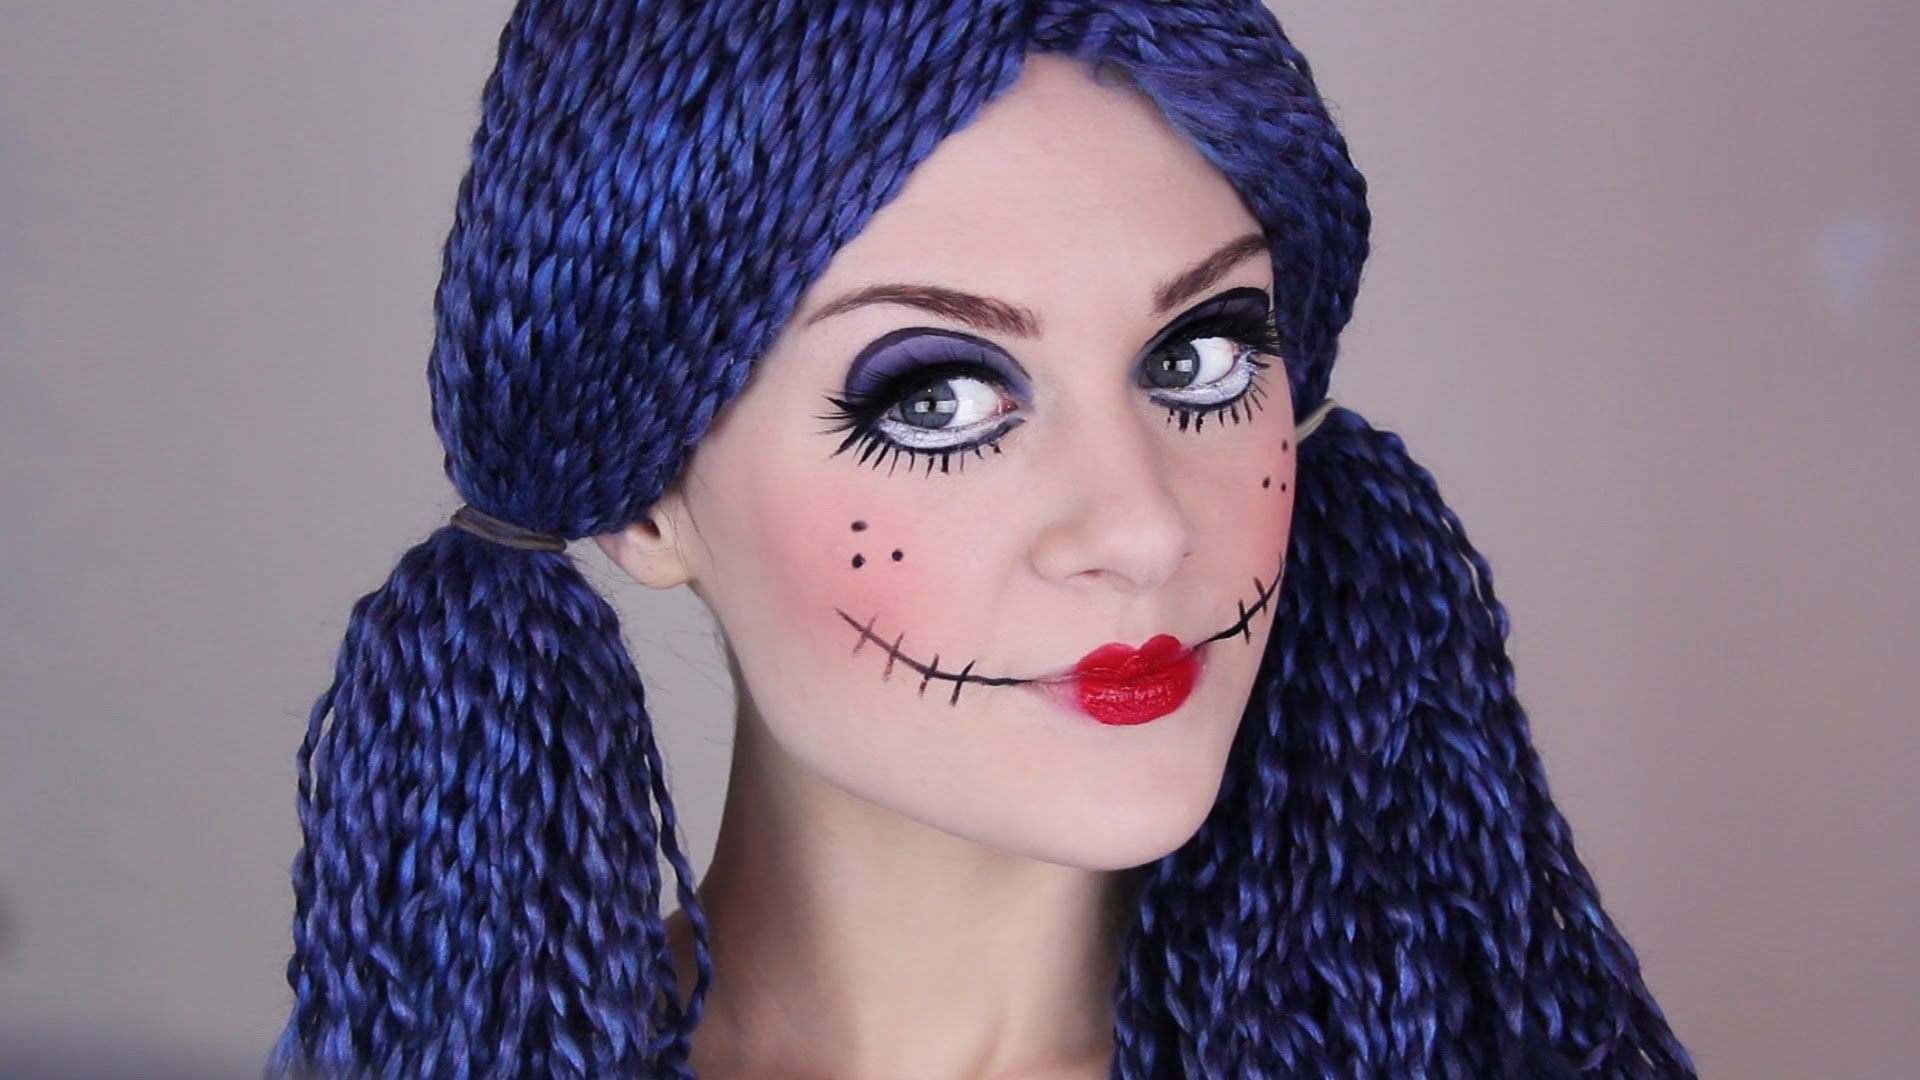 Lipstick tutorial scary doll makeup halloween doll makeup lipstick tutorial scary doll makeup halloween doll makeup tutorial youtube baditri Image collections